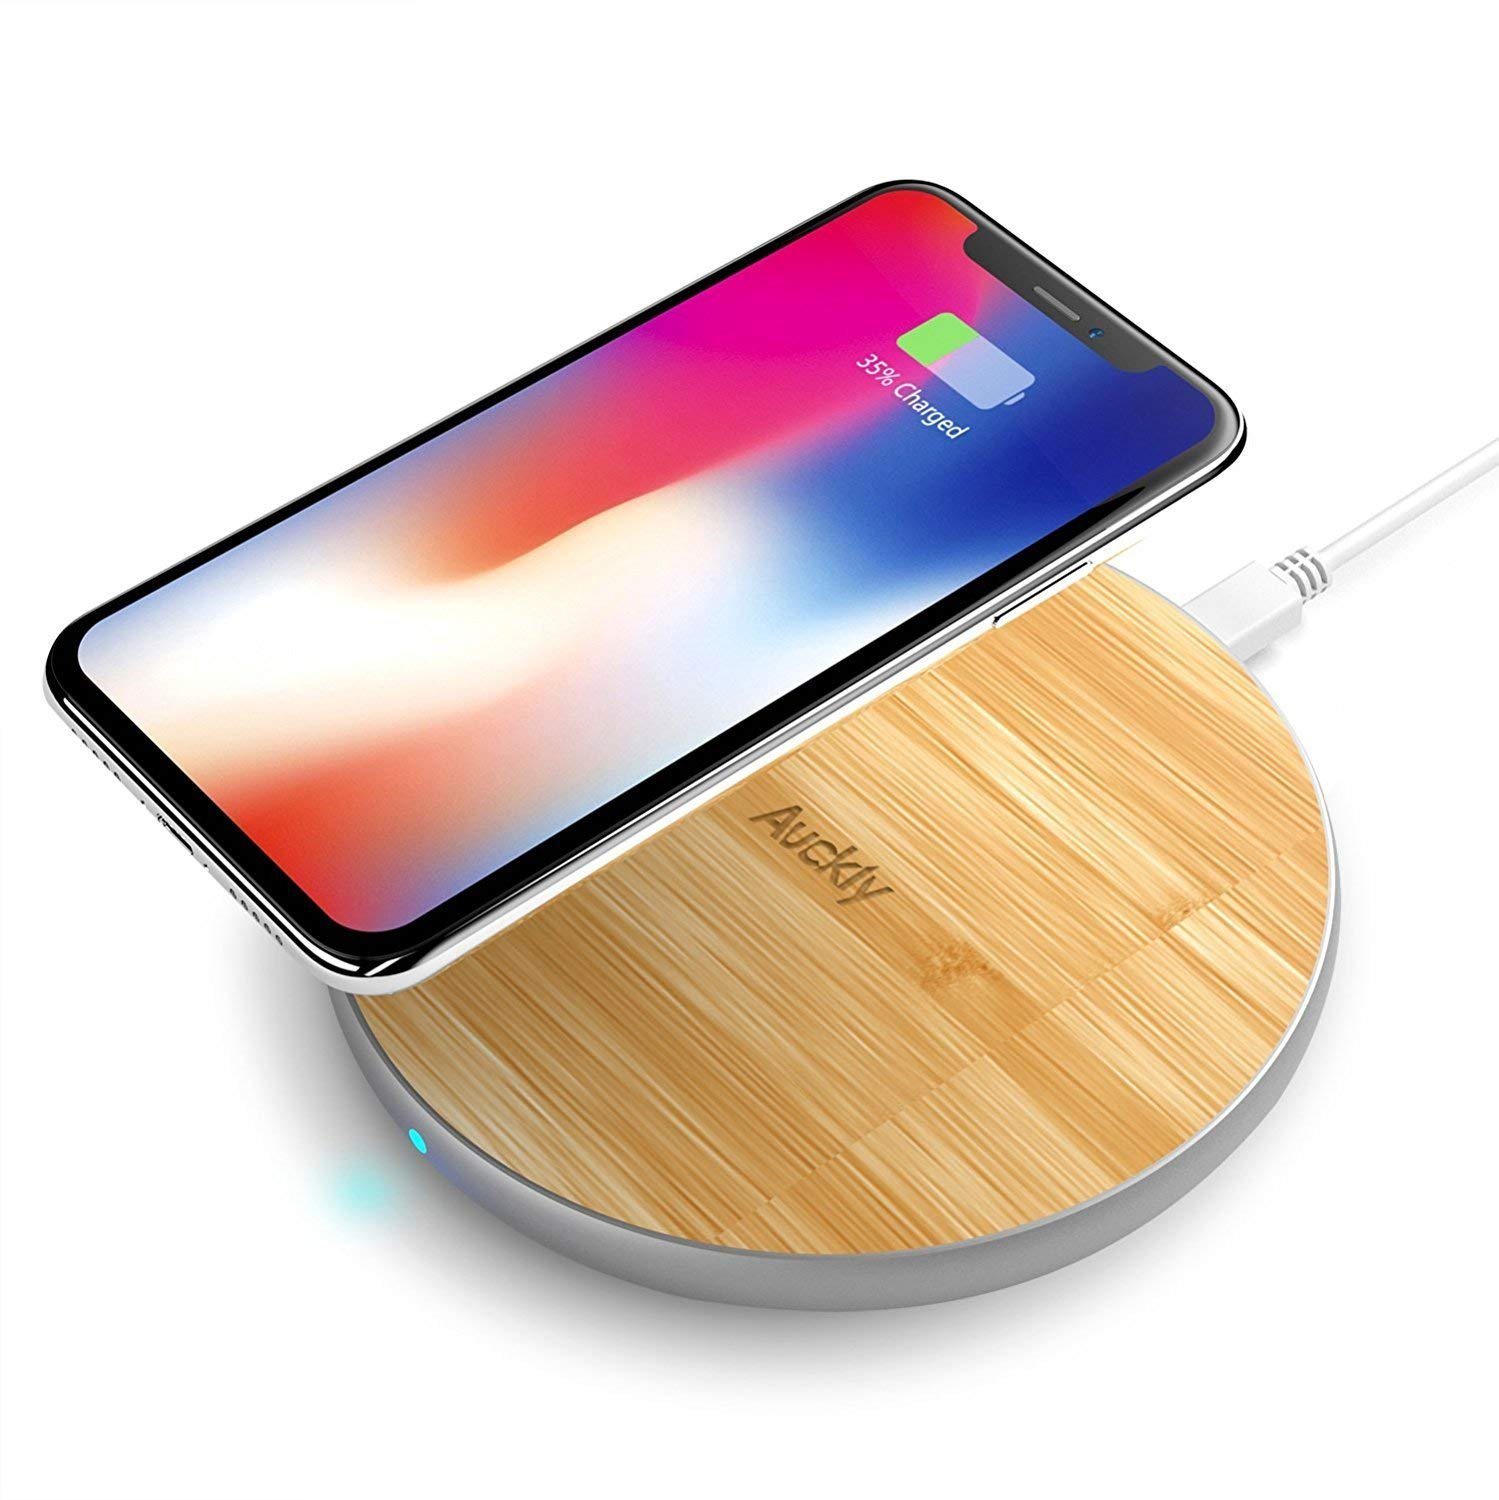 Auckly ZWEN-1 1 Fast Charger, 10W Bamboo Qi Wireless Charging Pad with Matte Aluminum Newest Model for iPhone 8/8 Plus/X and Samsung Galaxy Note8/Note5/S9/S9 S8 Plus/S7/S7edge/S6/S6Egde